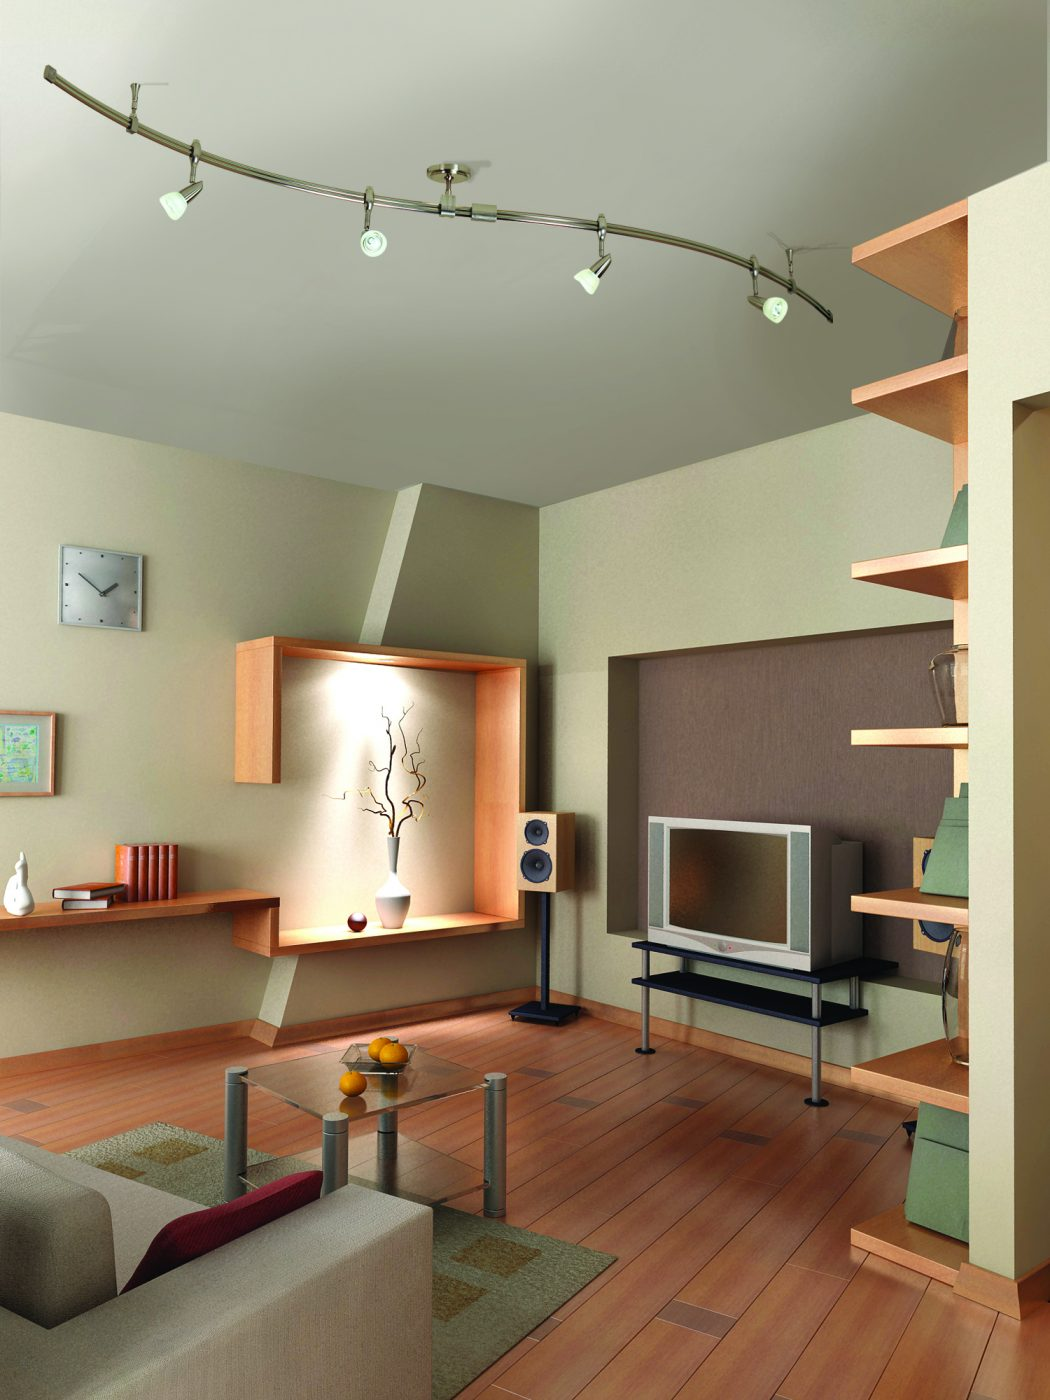 Livingroom-w_Mirage_Rail_Kit Creative 10 Ideas for Residential Lighting